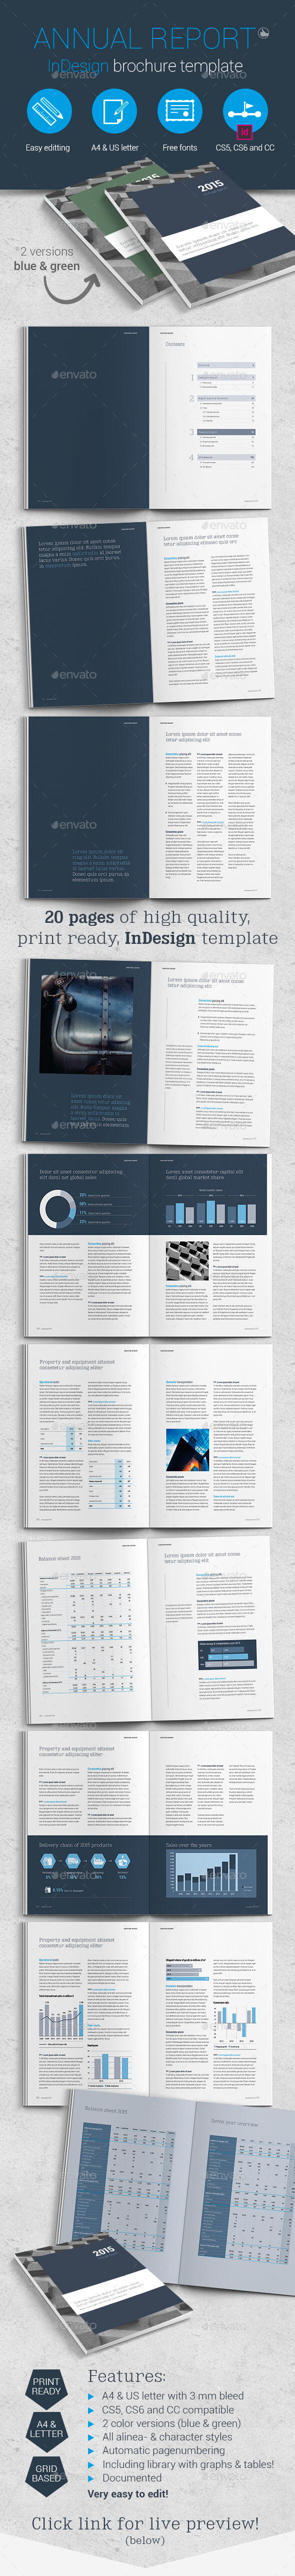 Annual Report Template Brochure - Brochures Print Templates